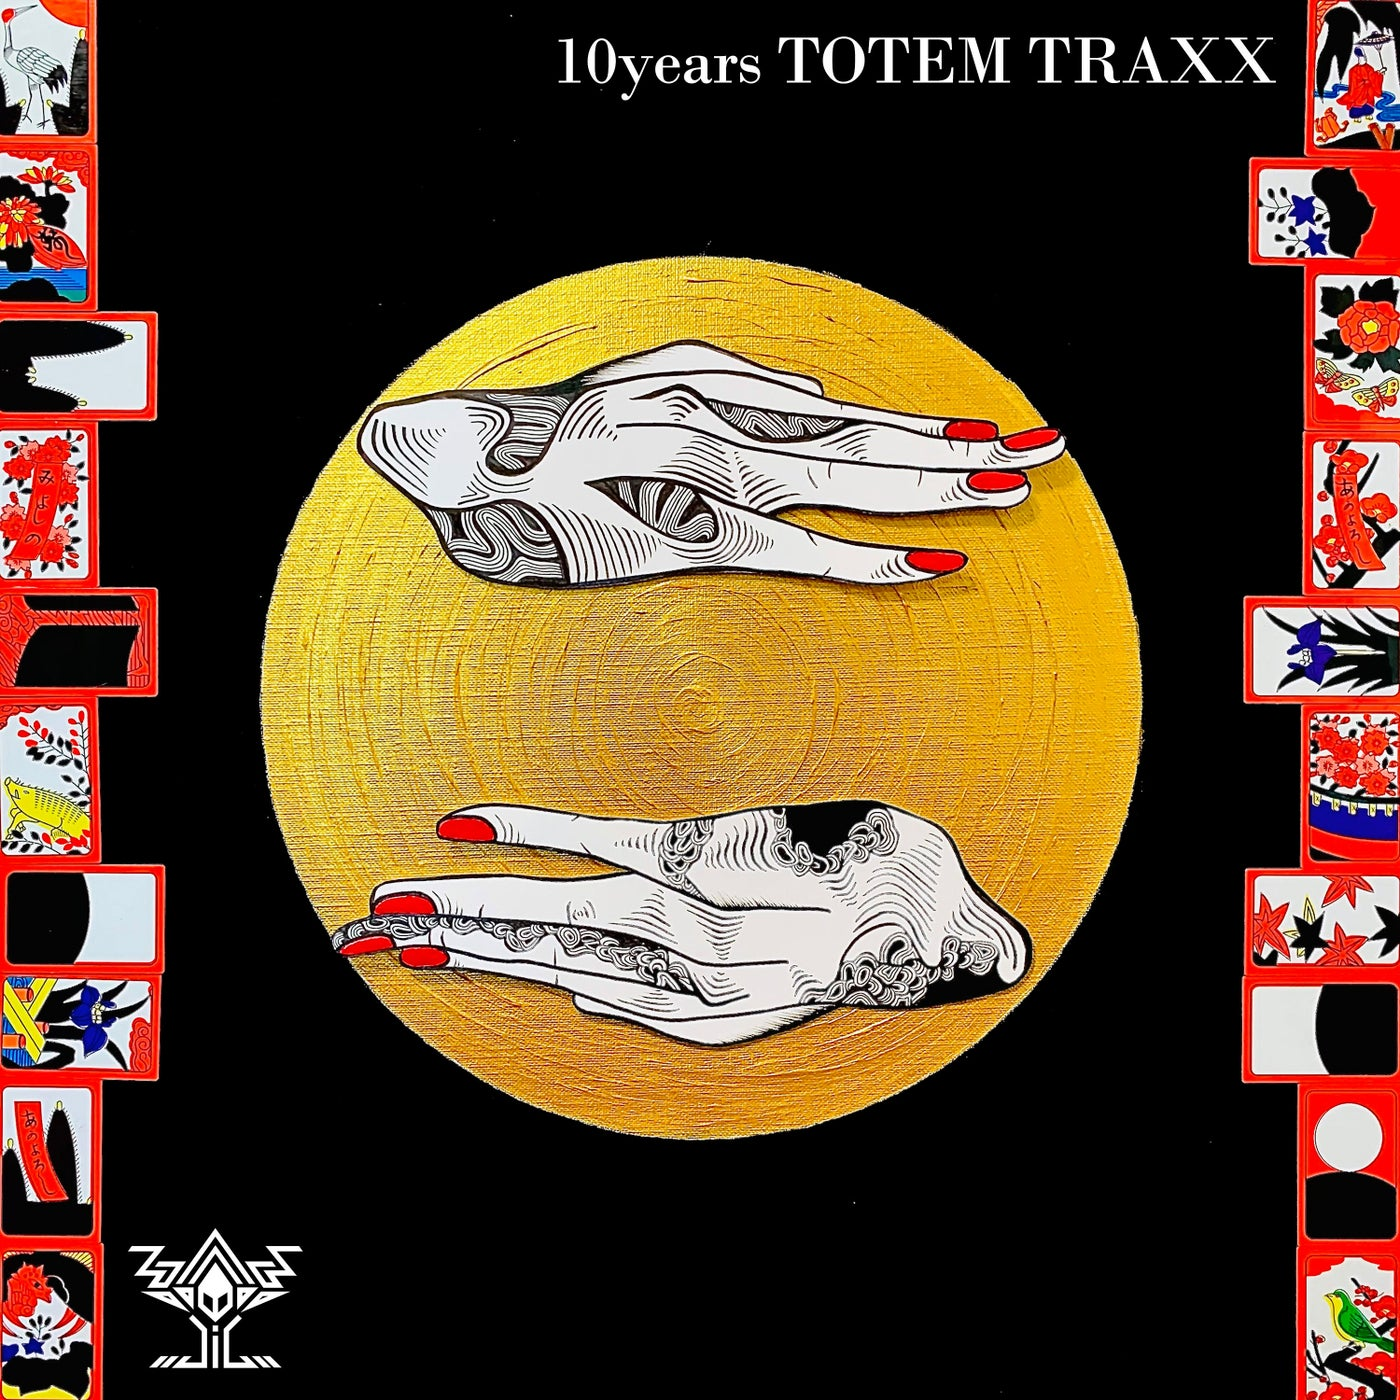 V.A / 10 years TOTEM TRAXX